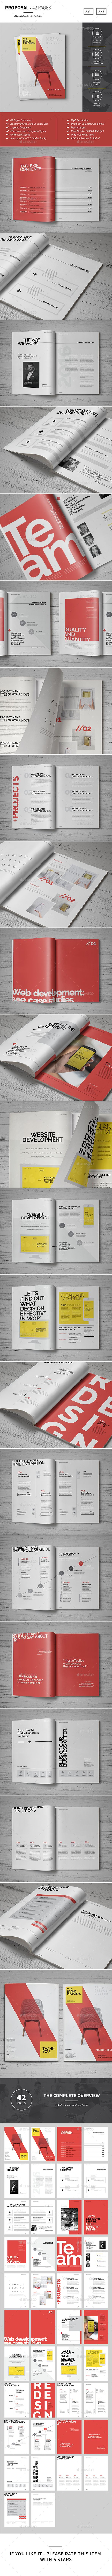 proposal paper template Proposal by BeCreative Proposal